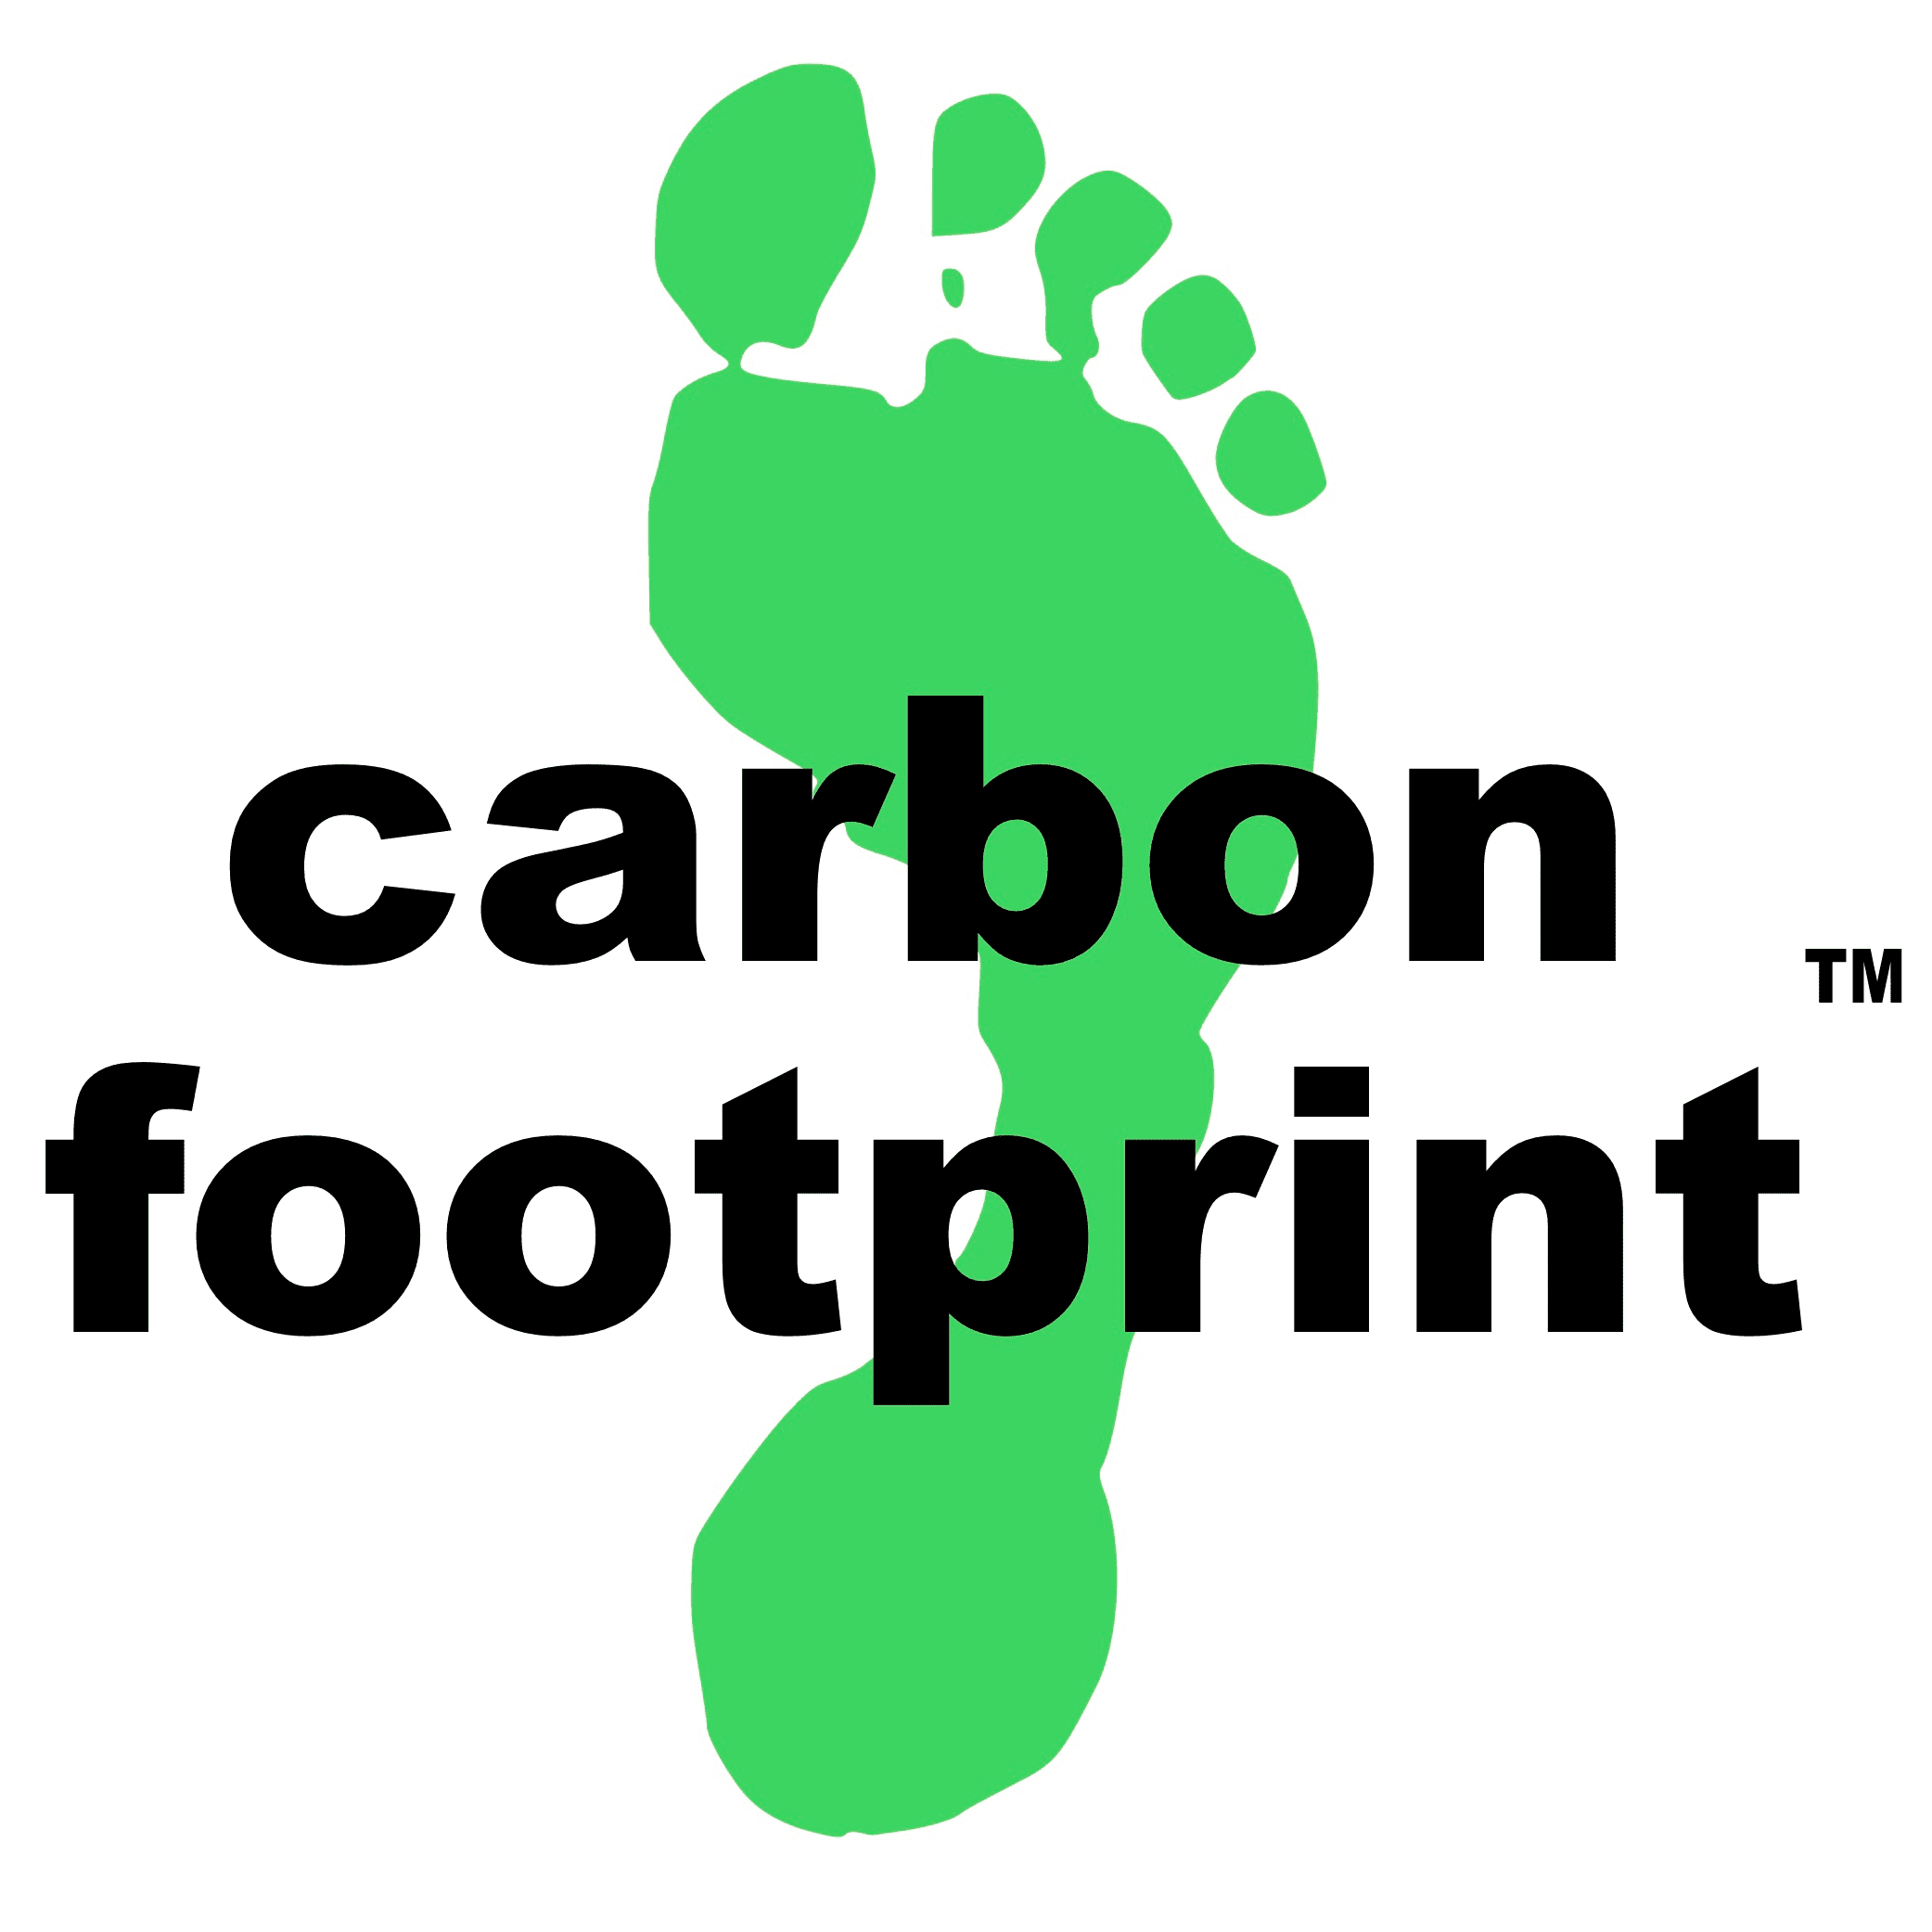 Carbon Reduction for Compound and Haul Road - Carbon Footprint Ltd Logo